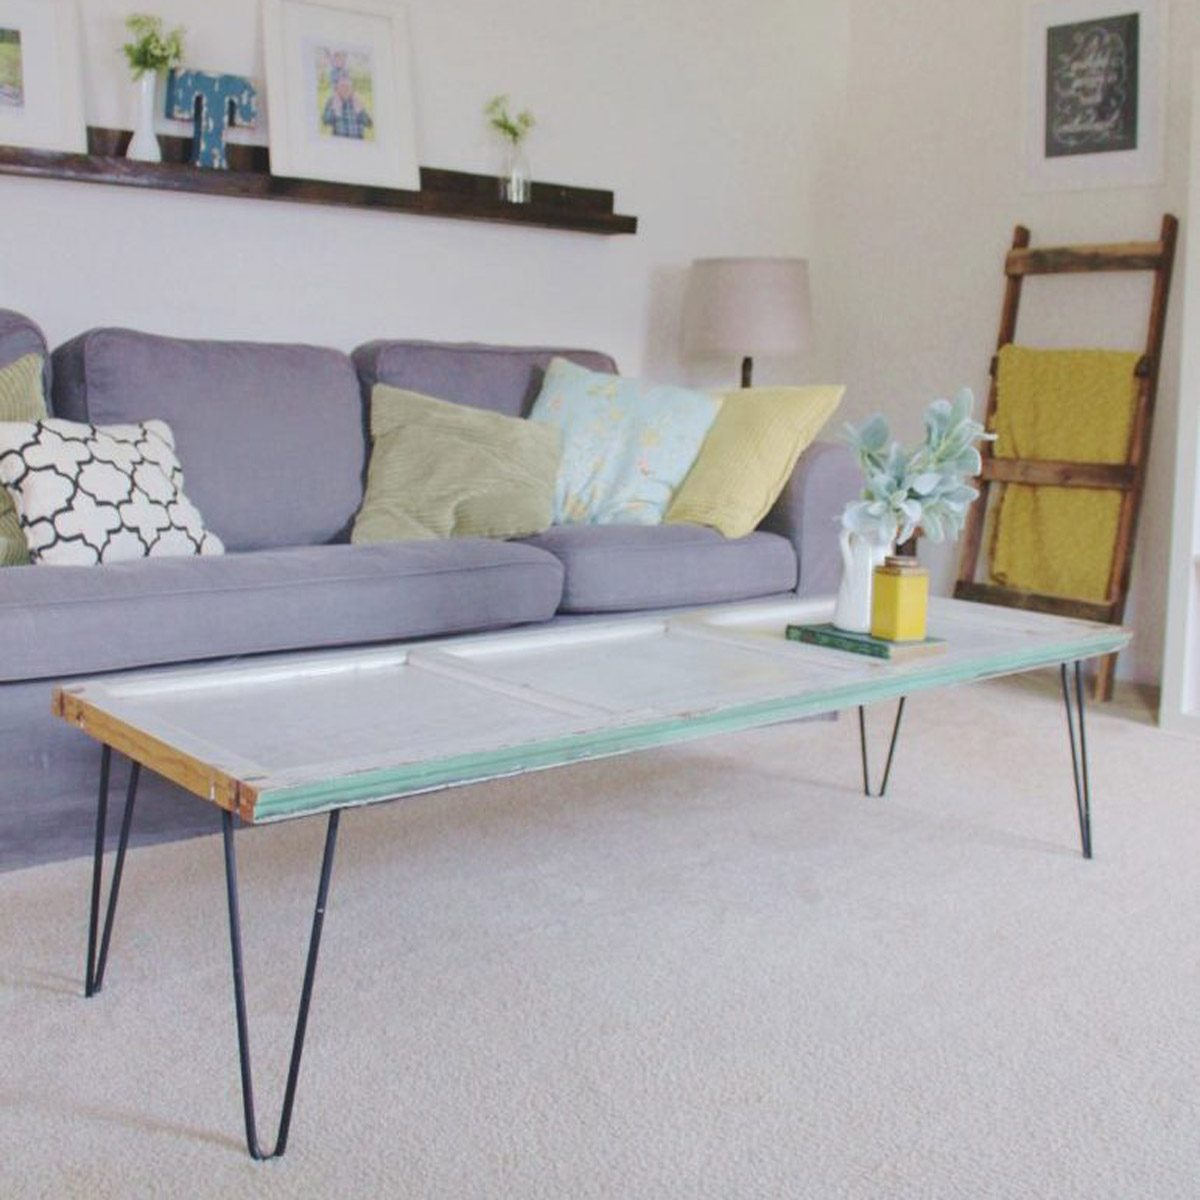 DIY coffee table with salvaged door and hairpin legs